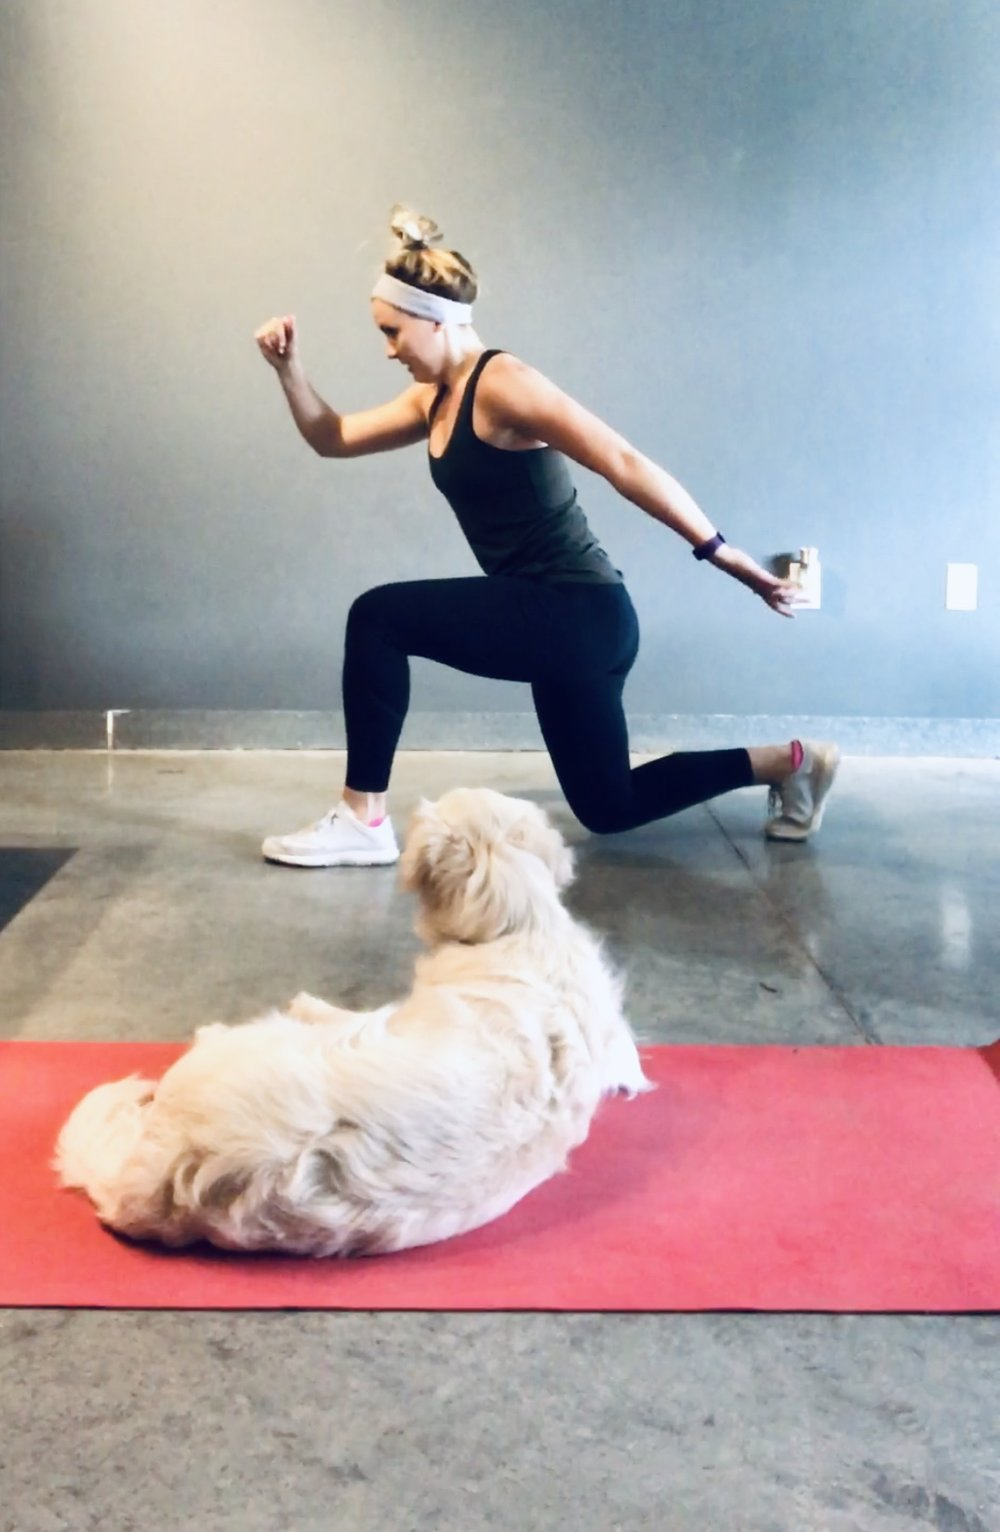 7 ways to hold yourself accountable when working out at home - Working out at home can be quite convenient, right?!